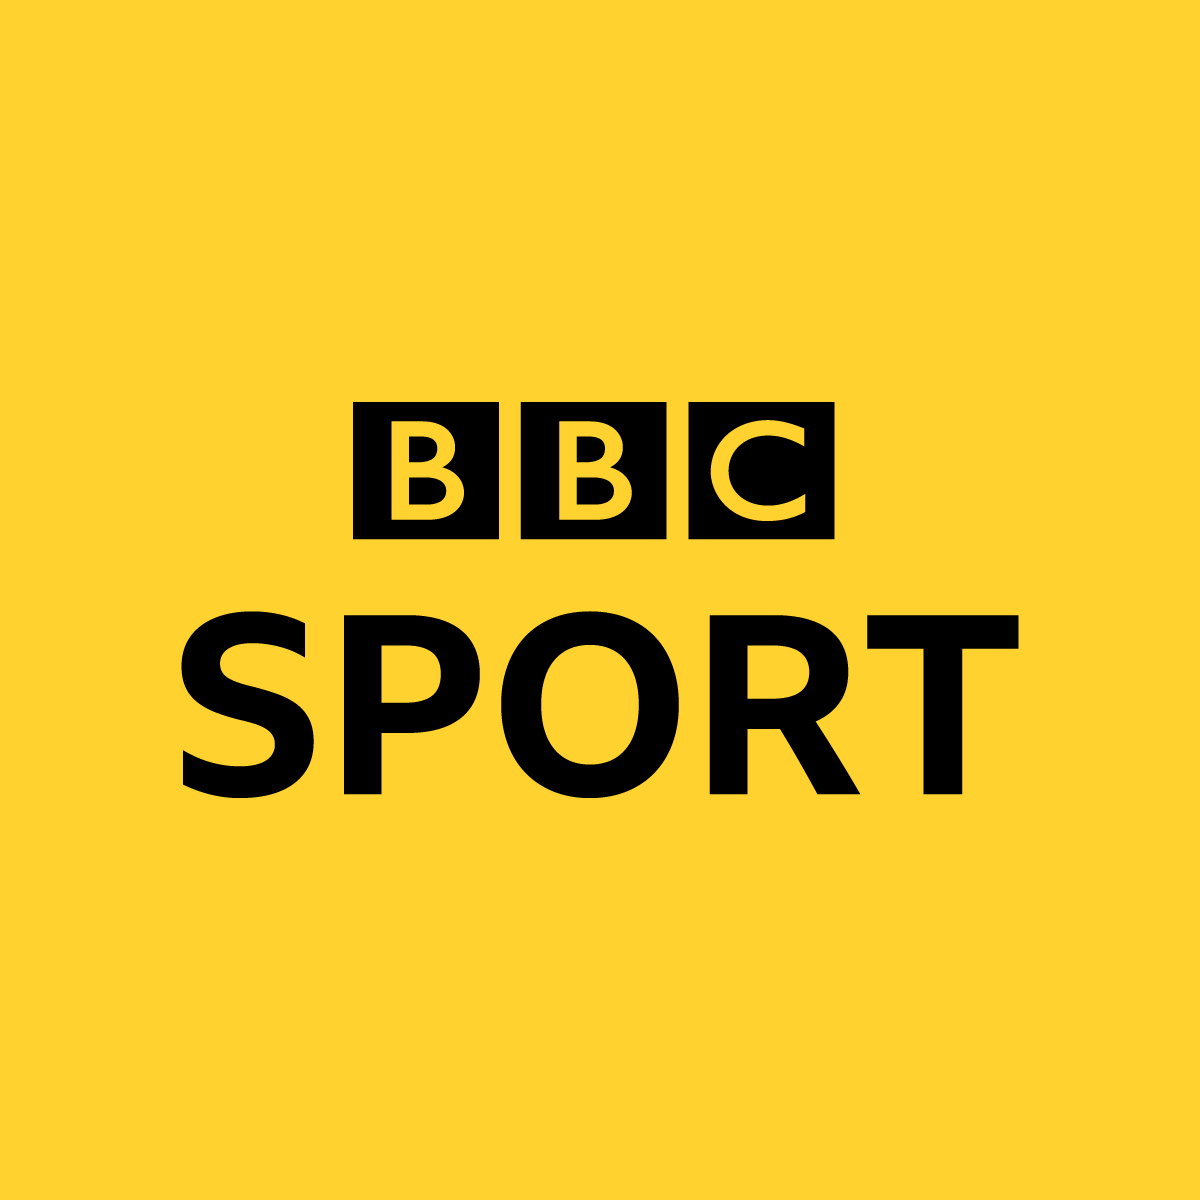 Watch: Some of this season's best Scottish Premiership goals - BBC Sport thumbnail